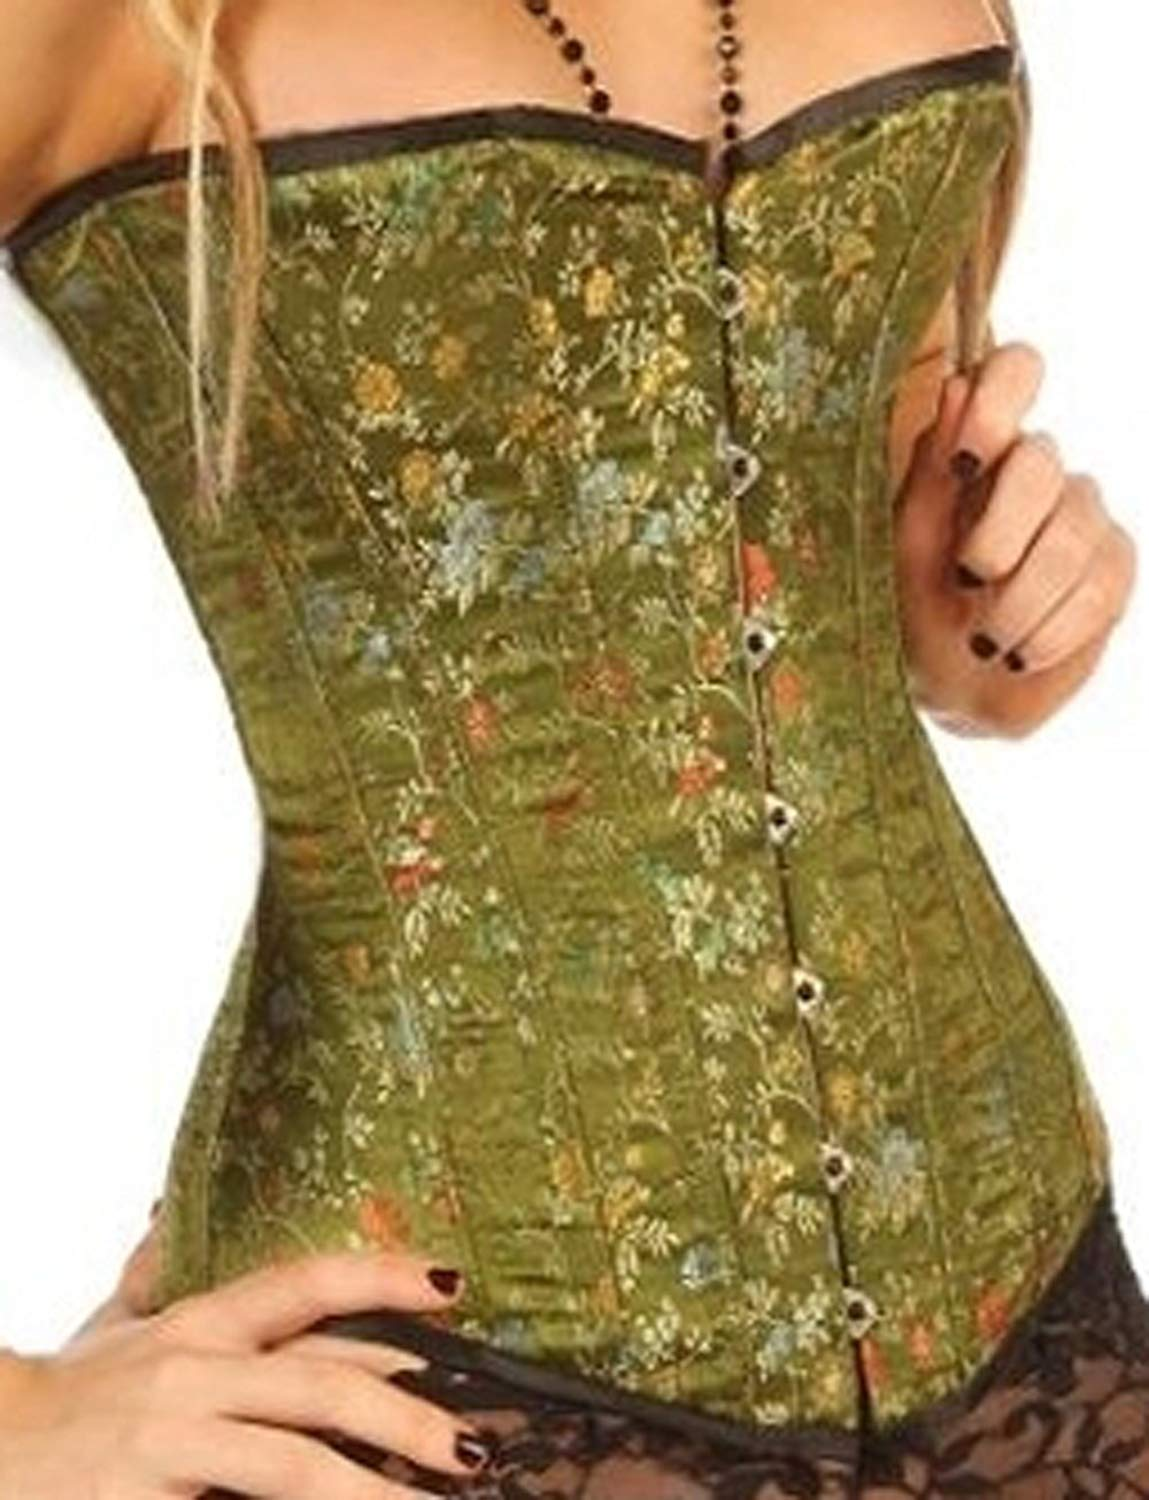 fe5e0bddd65 Get Quotations · Green Brocade Silk Corset Basque Fashion Corsets 1801 G